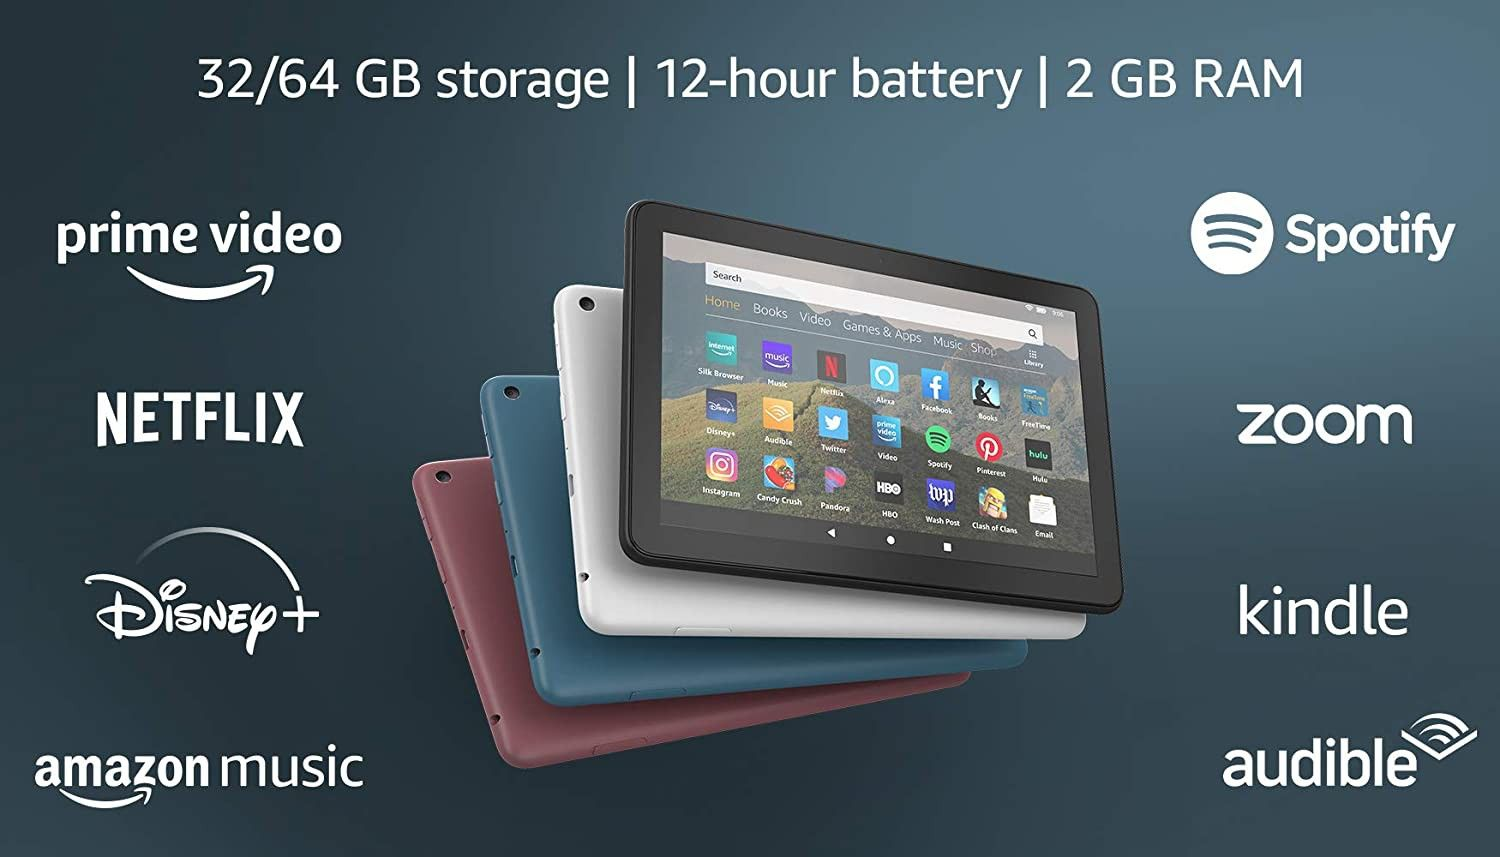 All New Fire Hd 8 Tablet 8 Hd Display 32 Gb Designed For Portable Entertainment Black Tablet Fire Tablet Kindle Fire Hd